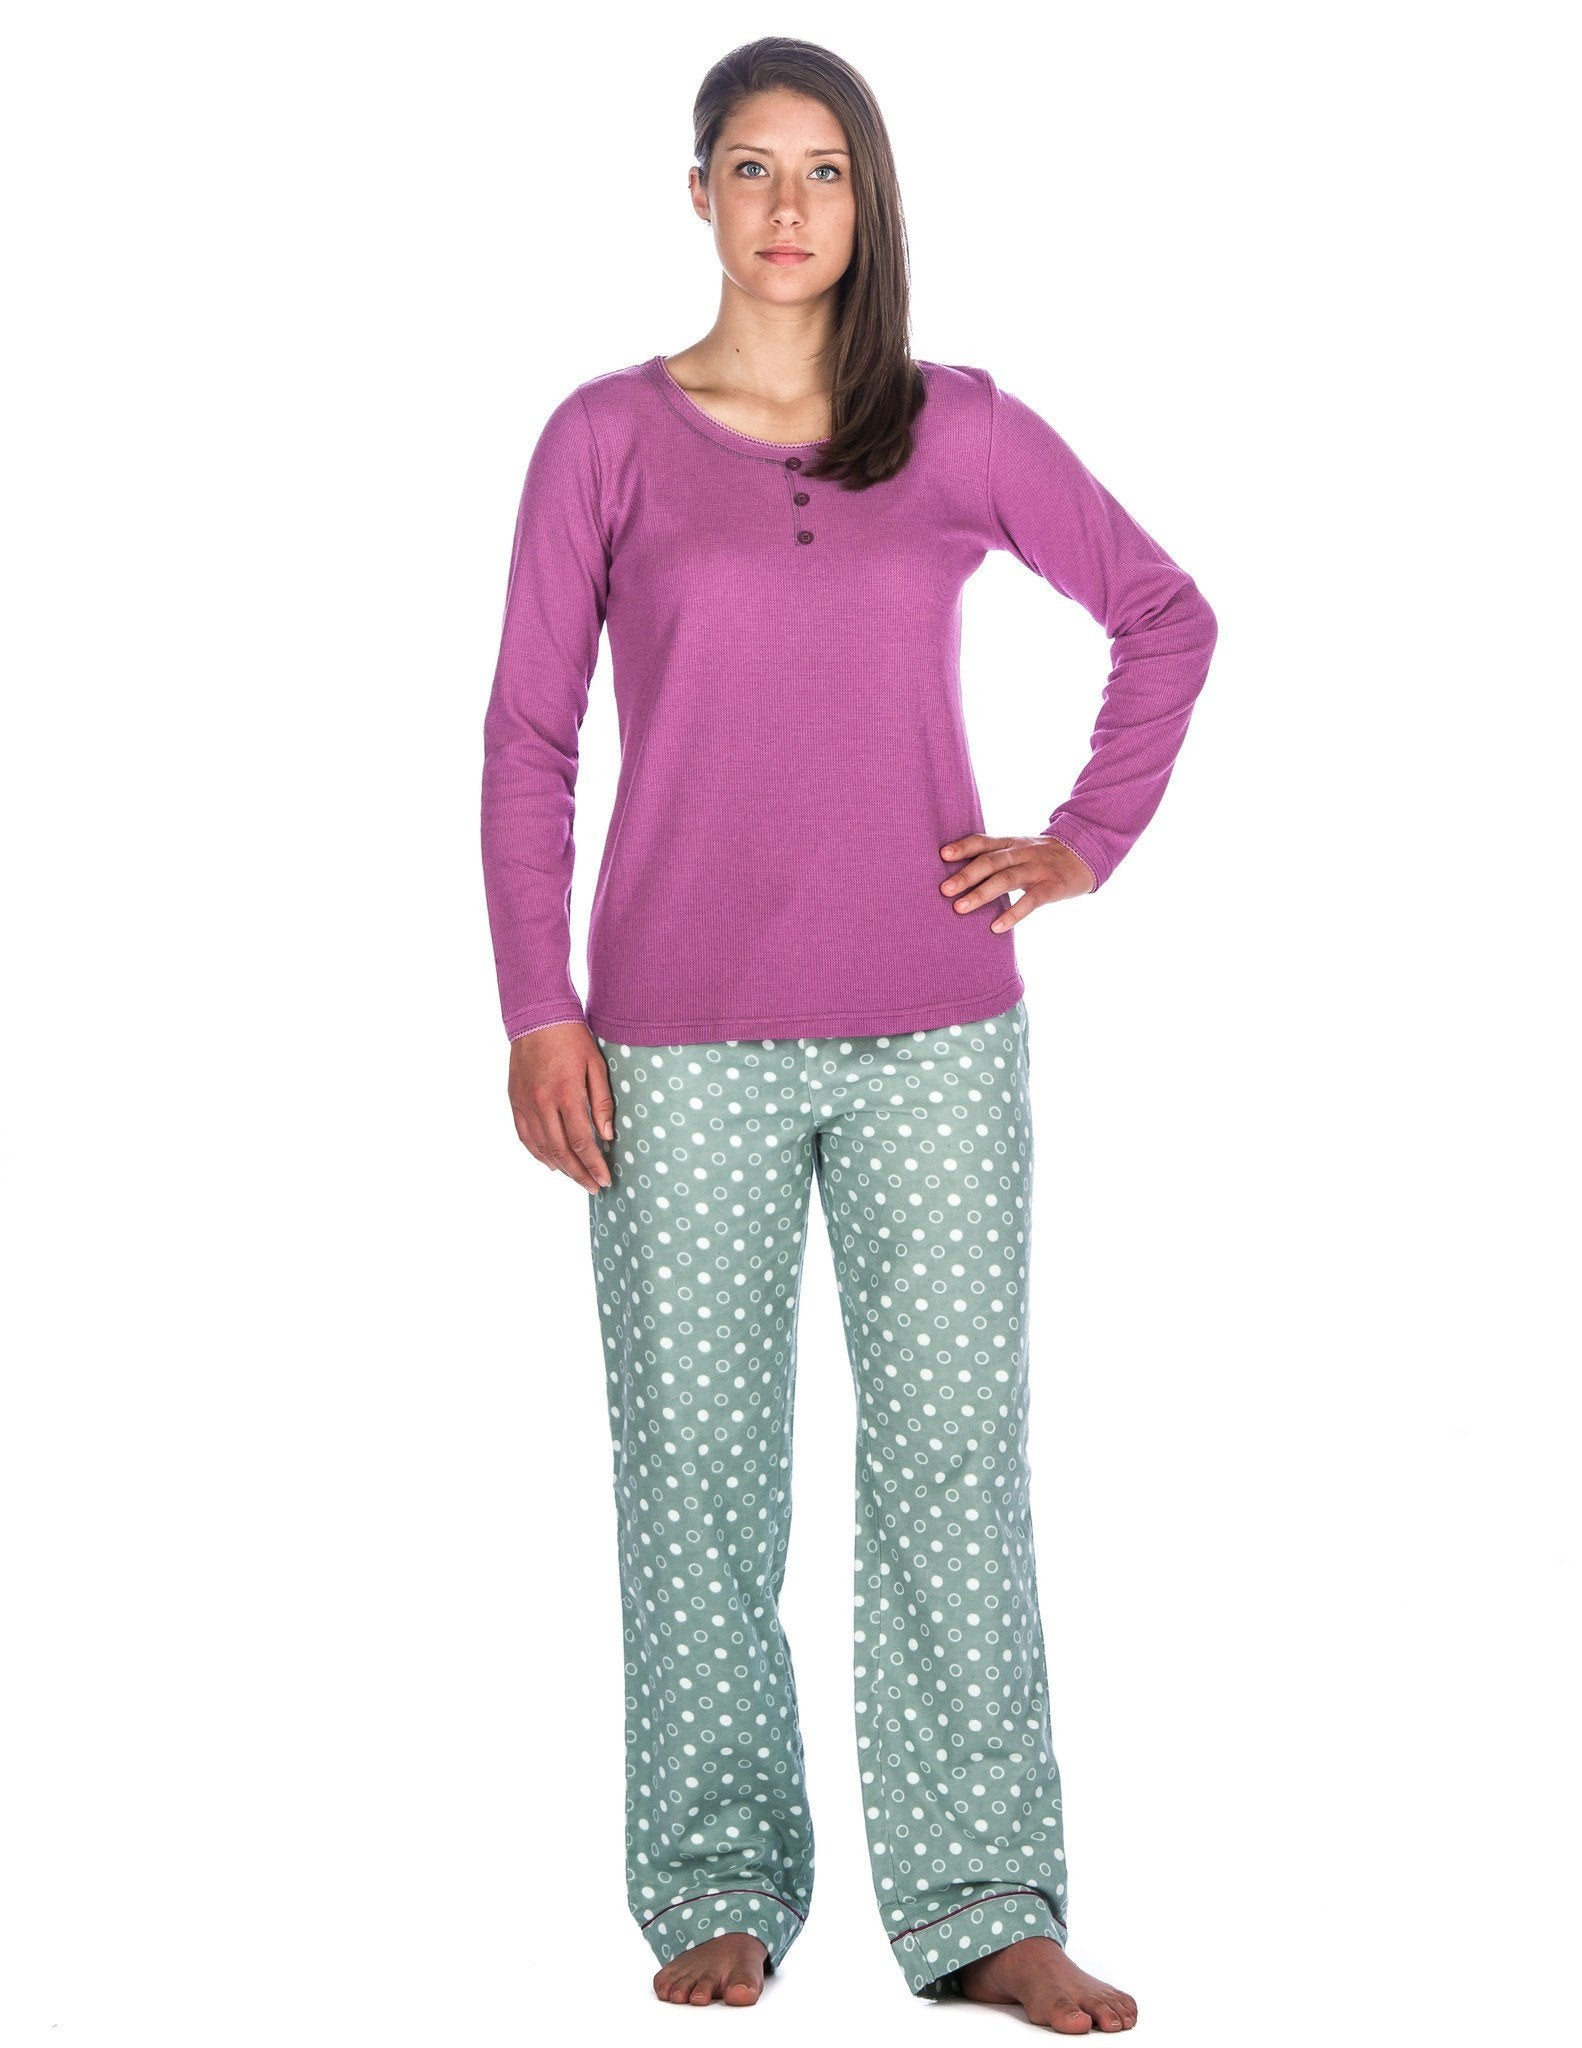 Relaxed Fit Womens Cotton Flannel Lounge Set with Crew Neck Top - Polka Circles Green